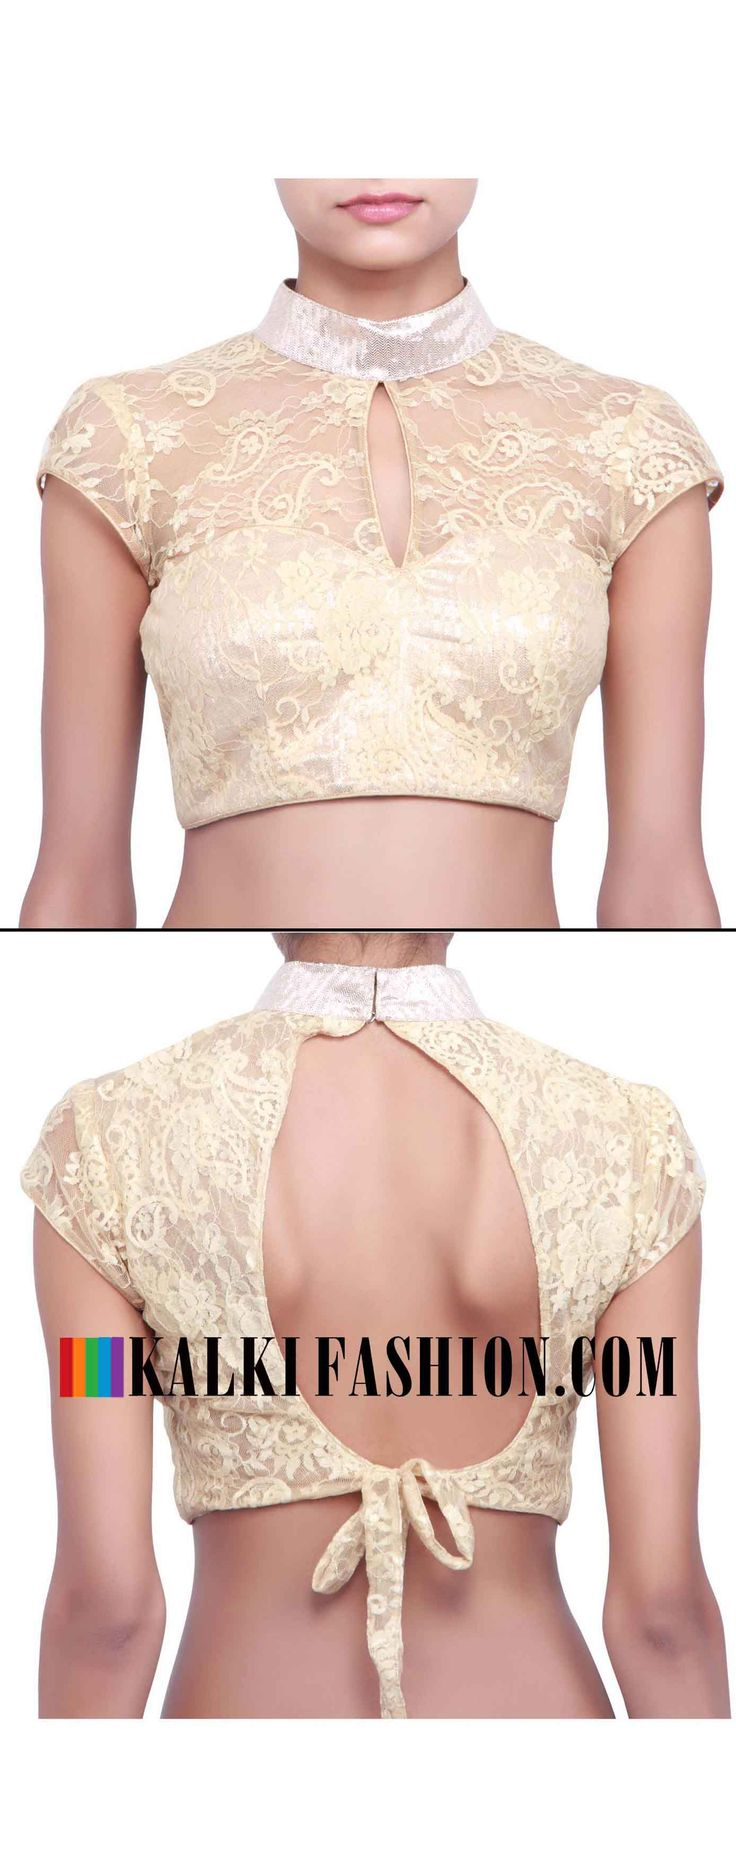 Buy online at: http://www.kalkifashion.com/beige-blouse-featuring-with-chinese-collar-only-on-kalki.html Free shipping worldwide.